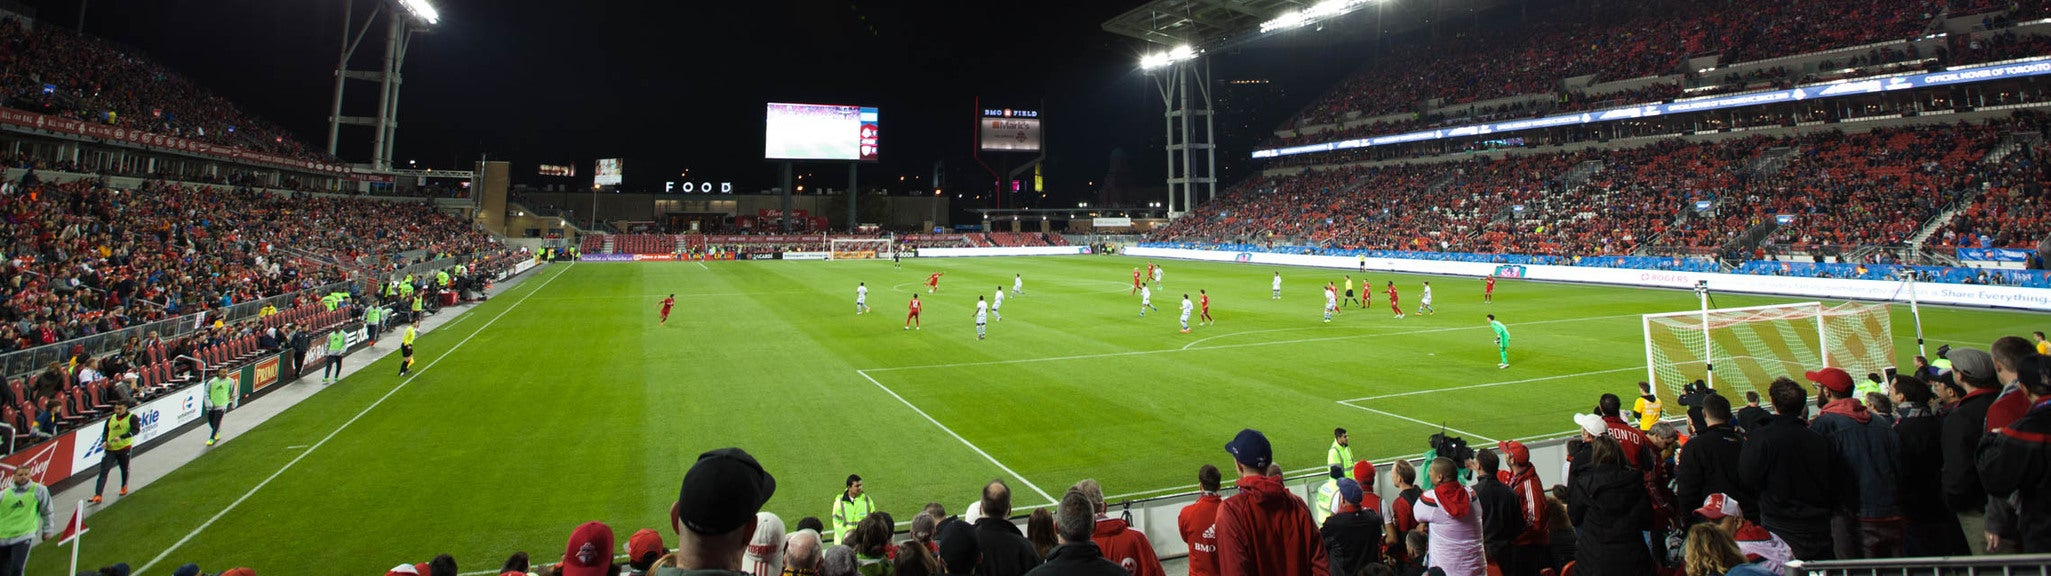 Seat view from Supporter